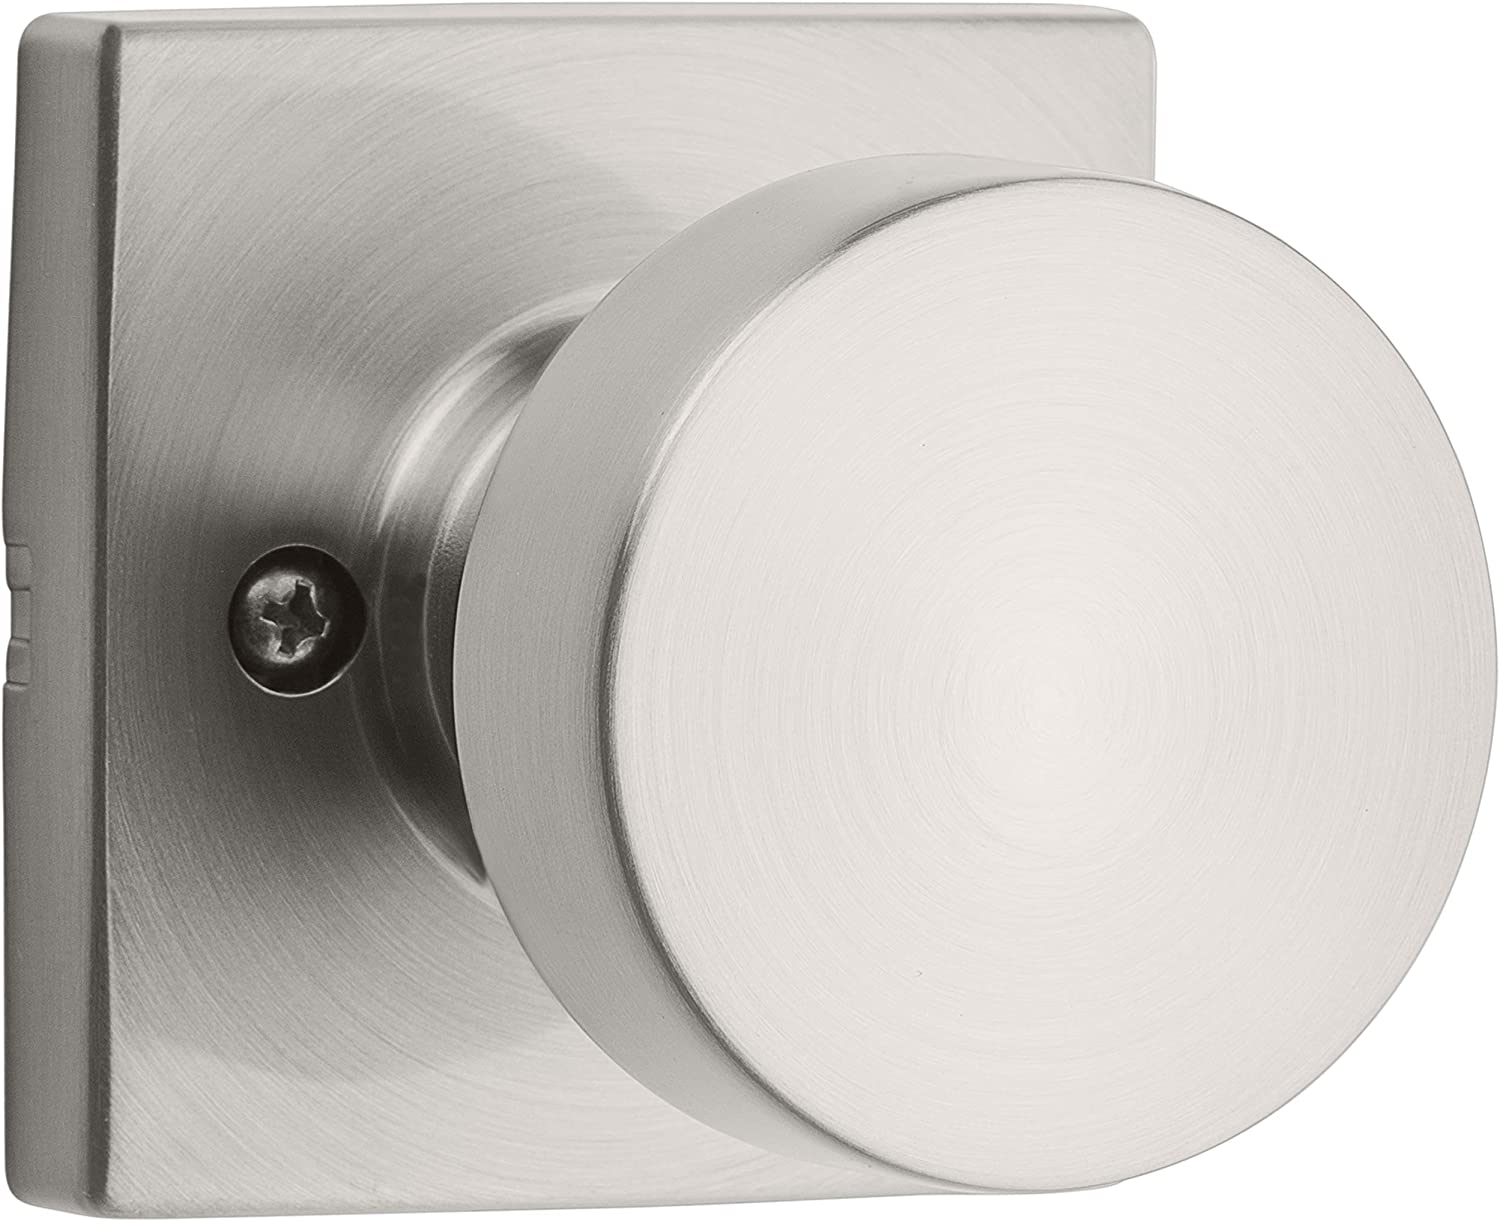 Kwikset 97880-941 Pismo Half-Dummy Square Modern Door Knob with Microban Antimicrobial Protection for a Home Pantry or Closet, Satin Nickel